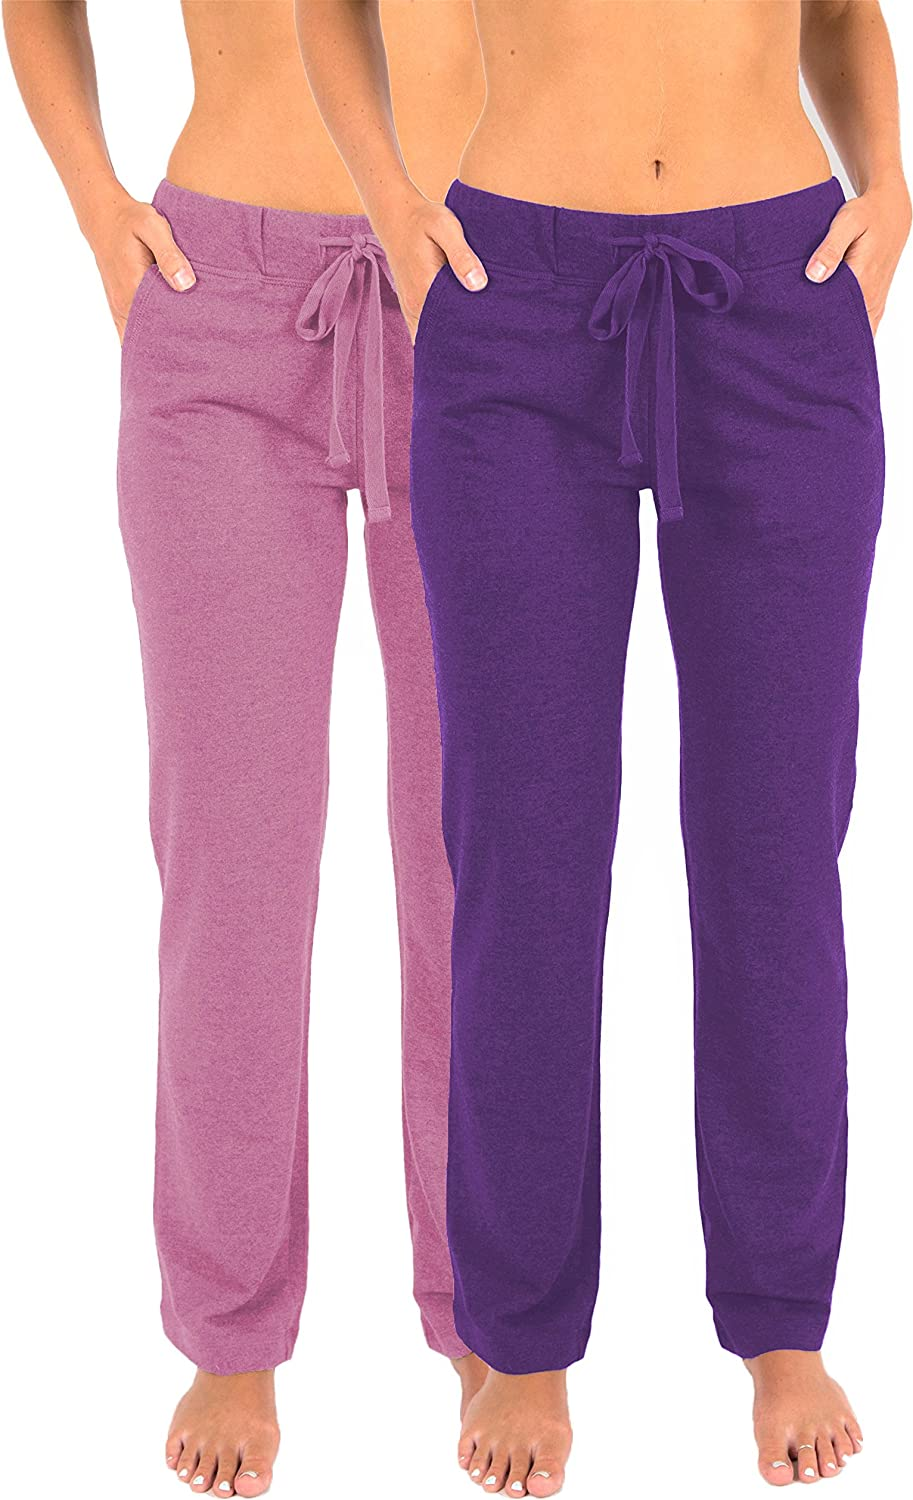 Sexy Basics Women's 2 Pack Ultra Soft French Terry Cotton Drawstring Yoga Lounge Long Pants